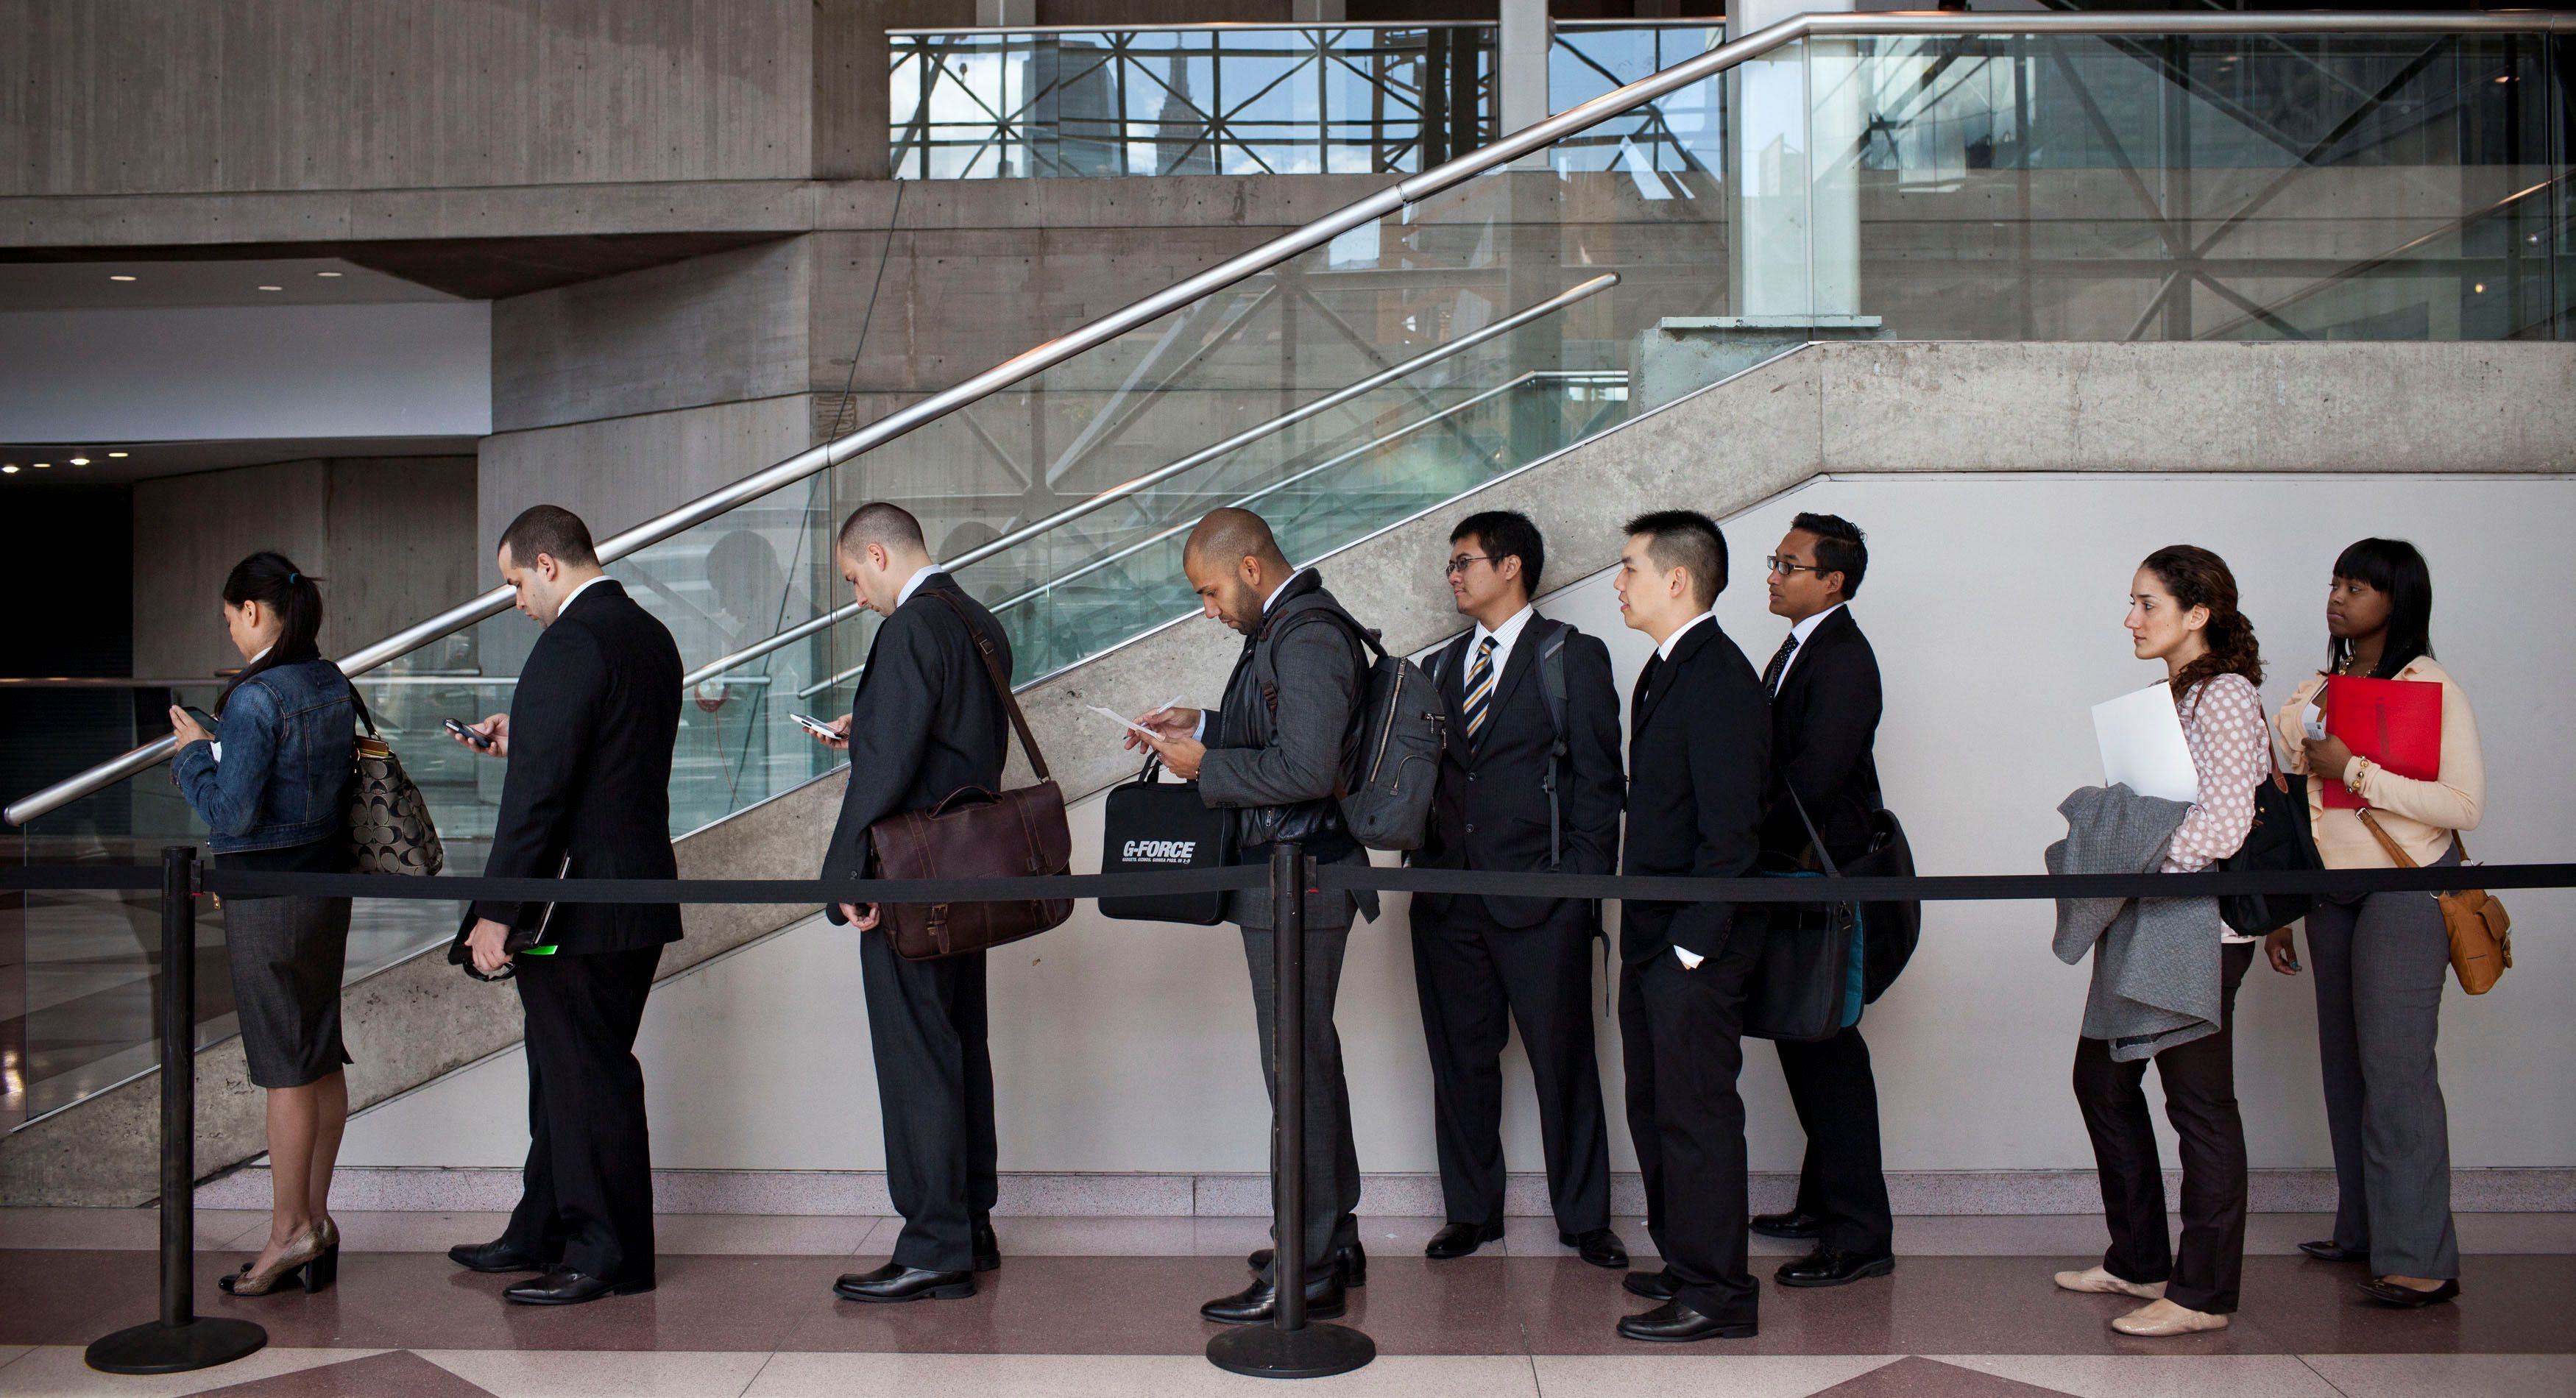 Not To Belabor Things: What Unemployment Rates Don't Tell You